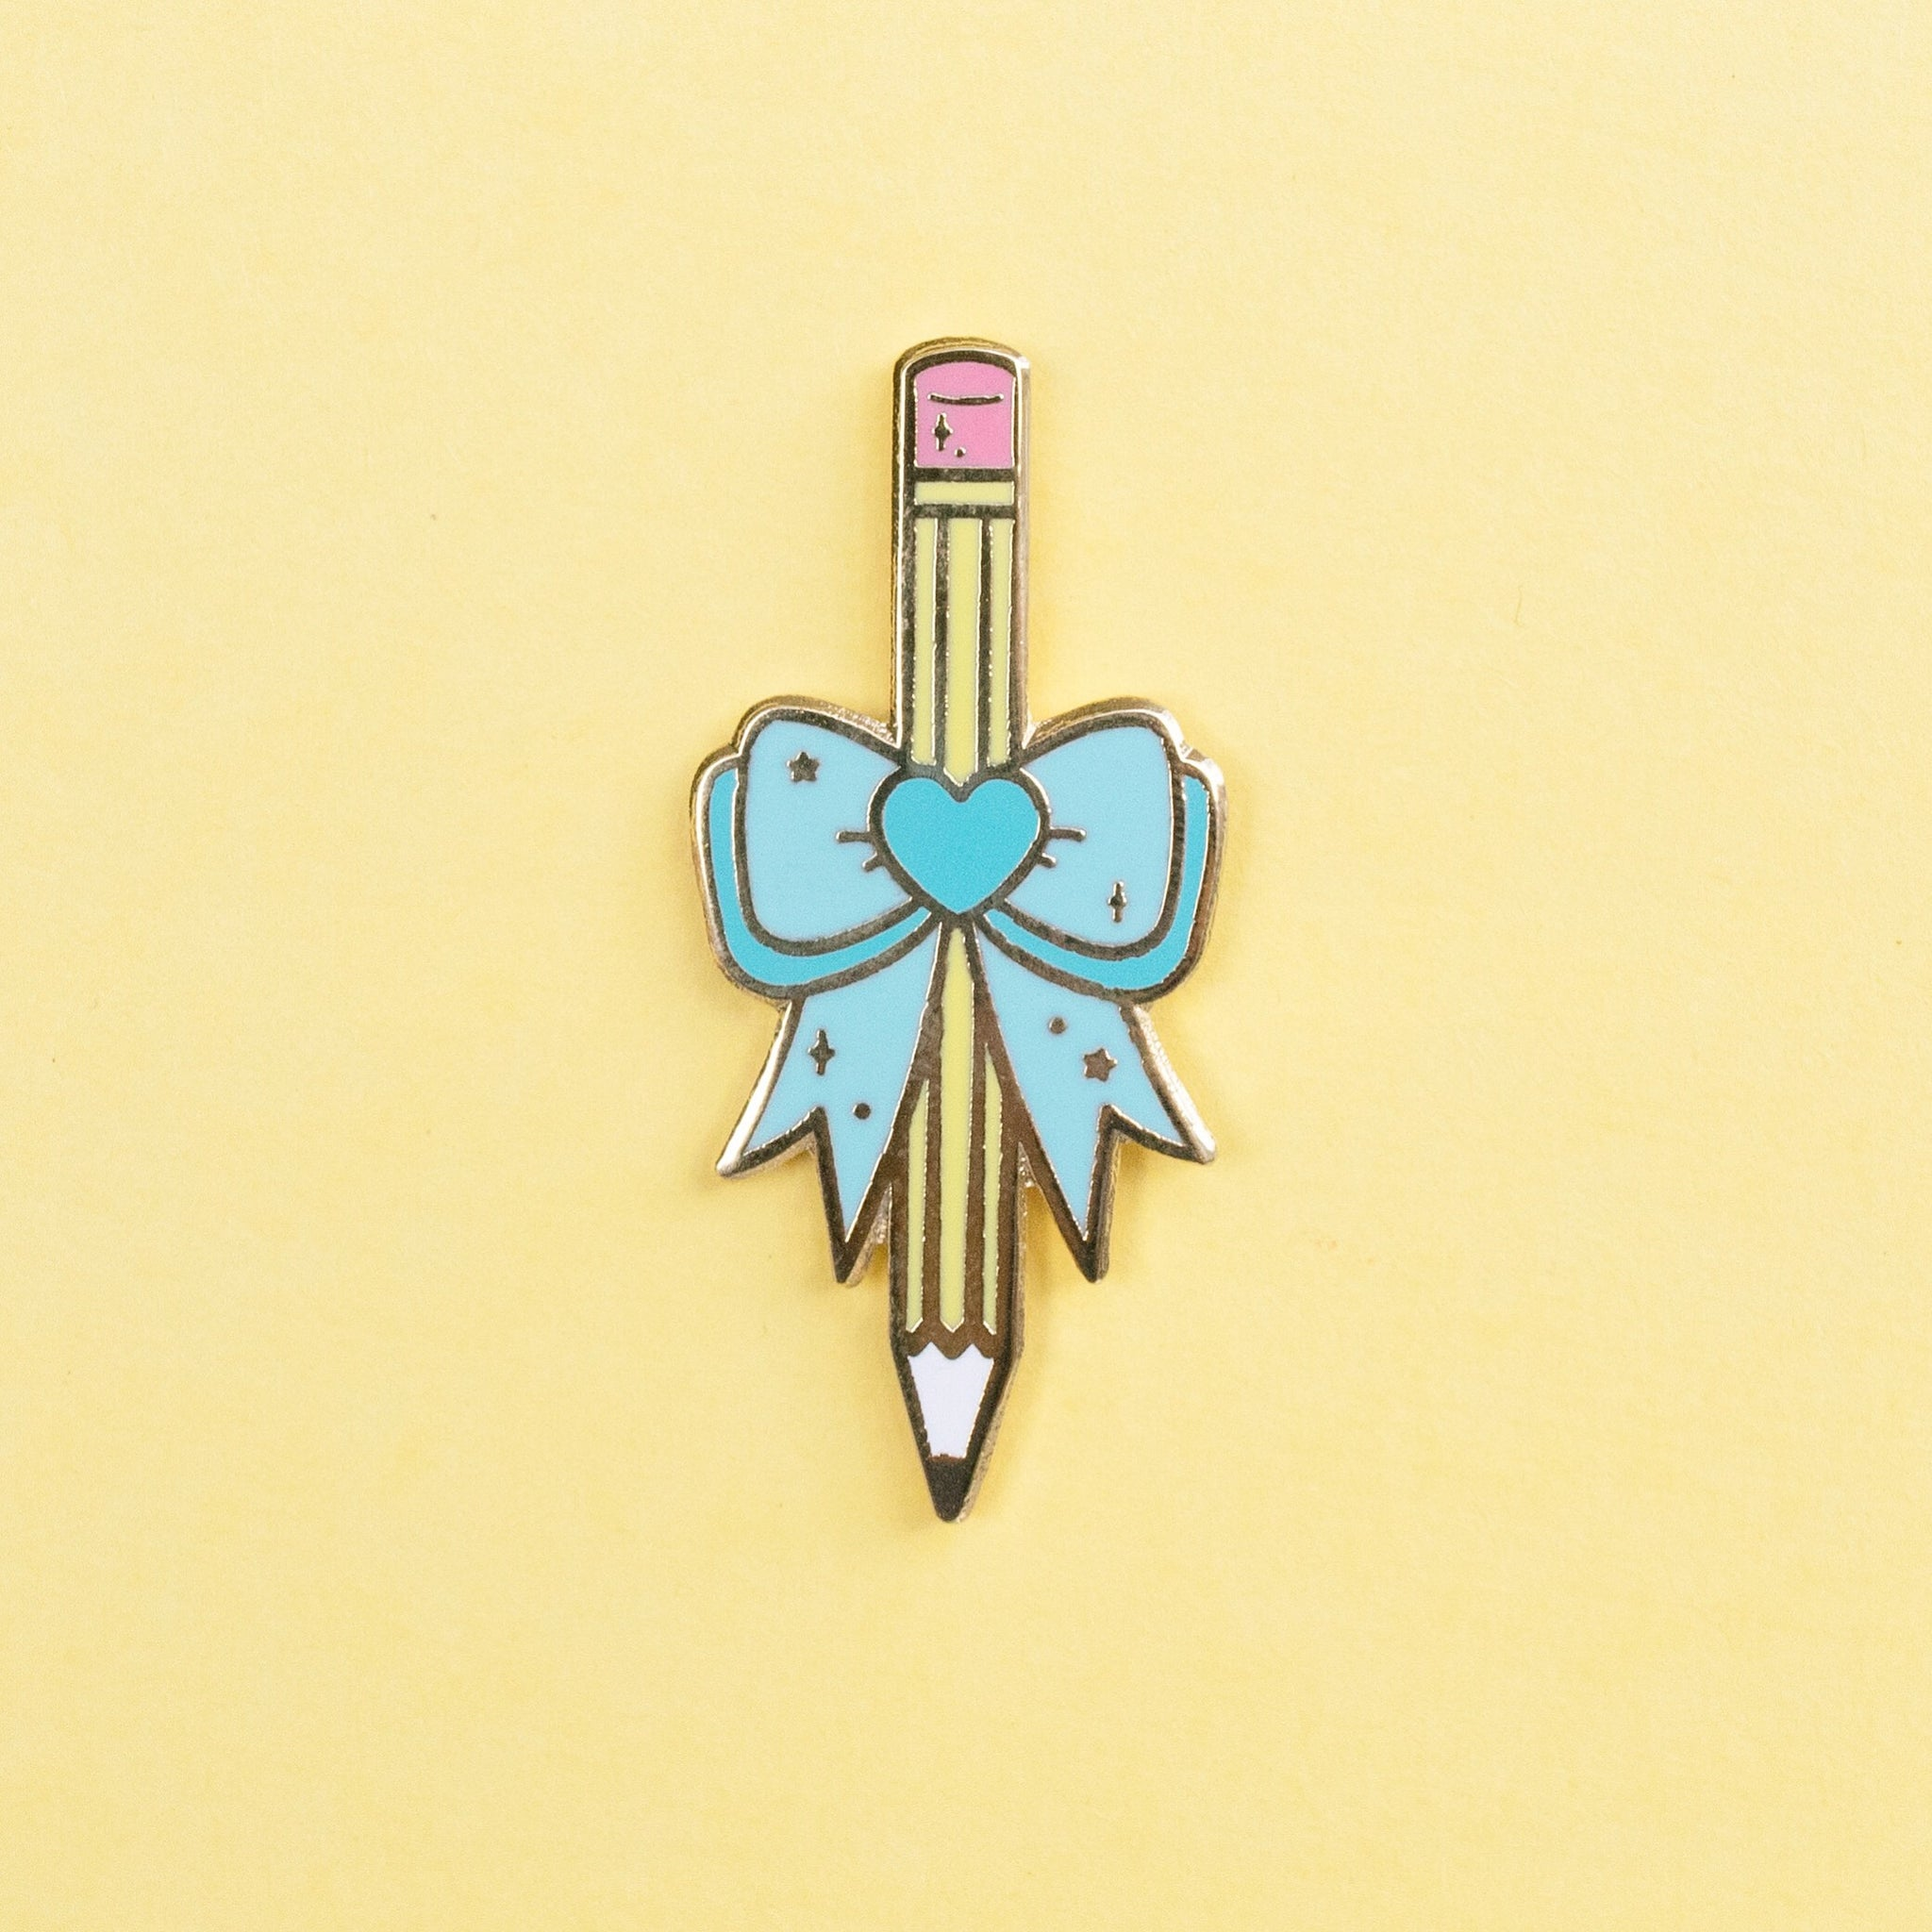 Pencil with Bow Pin - Blue